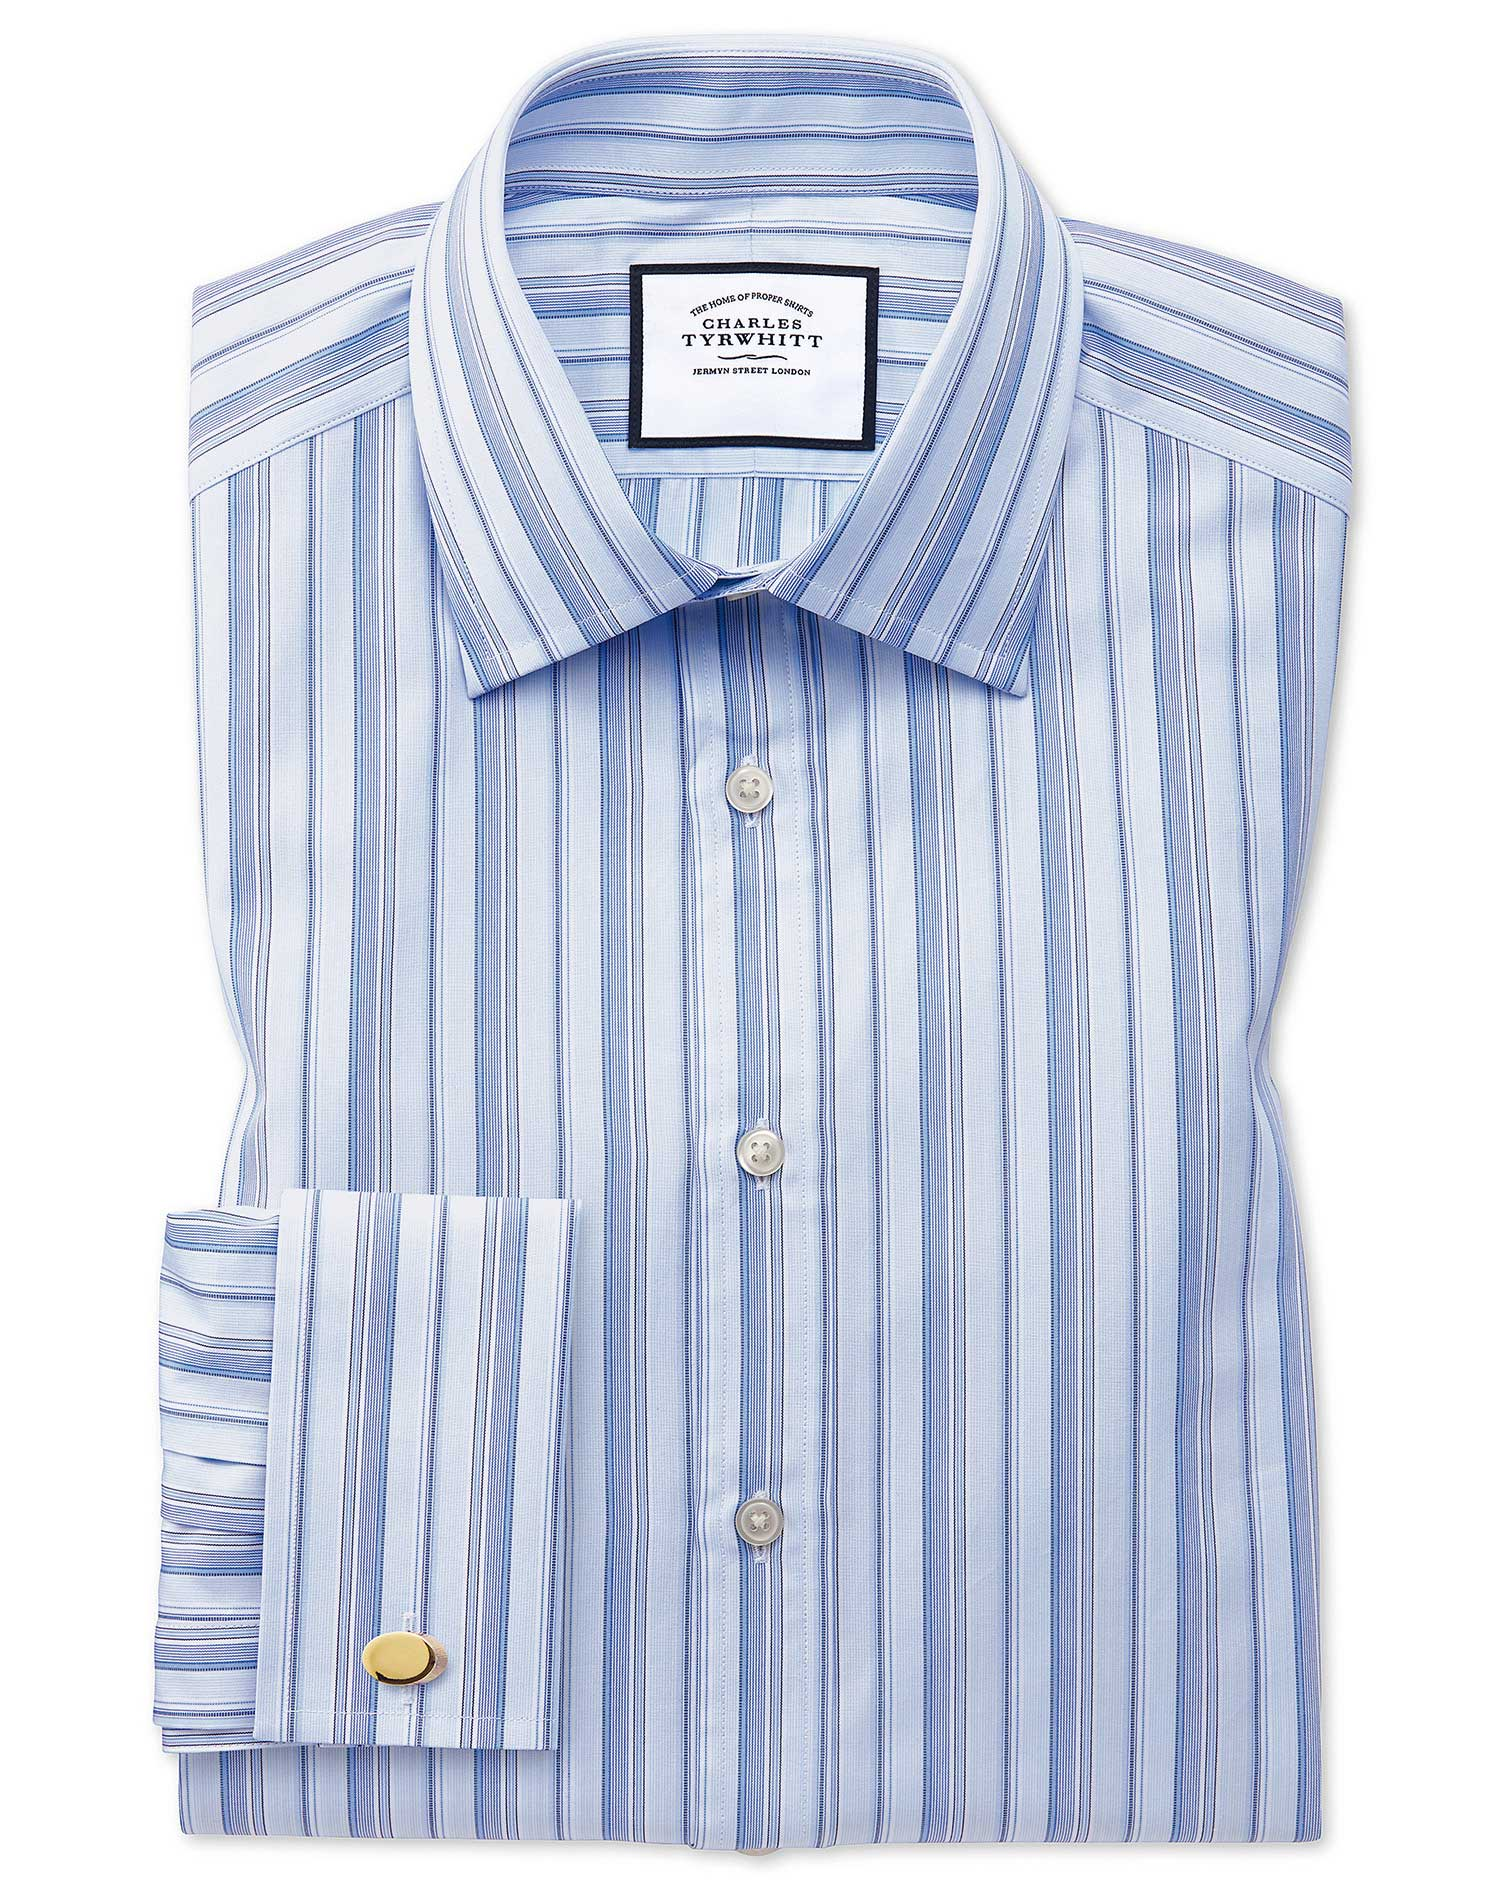 Classic Fit Sky Blue Multi Stripe Egyptian Cotton Formal Shirt Double Cuff Size 15/33 by Charles Tyrwhitt from Charles Tyrwhitt